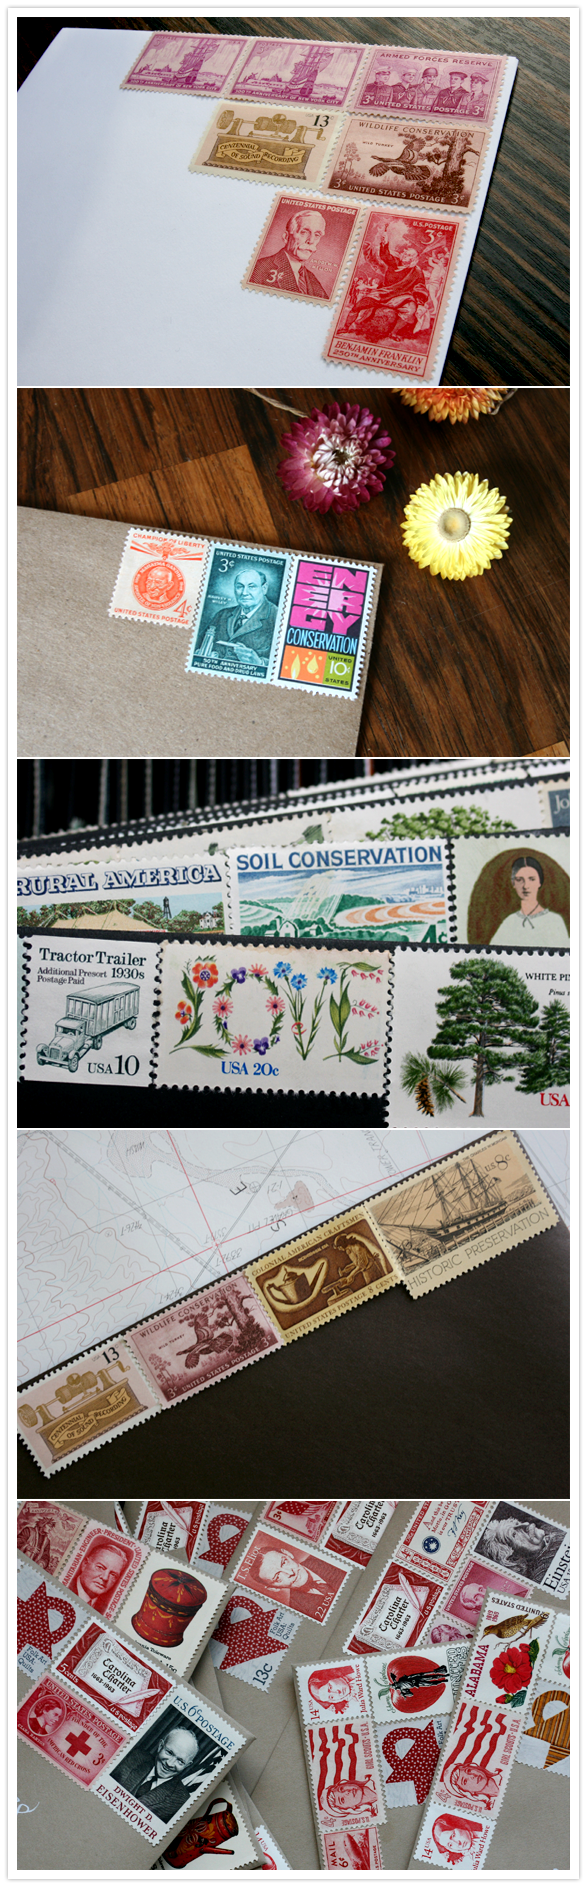 Vintage Stamps and how to find them | Wedding Inspiration | 100 Layer Cake